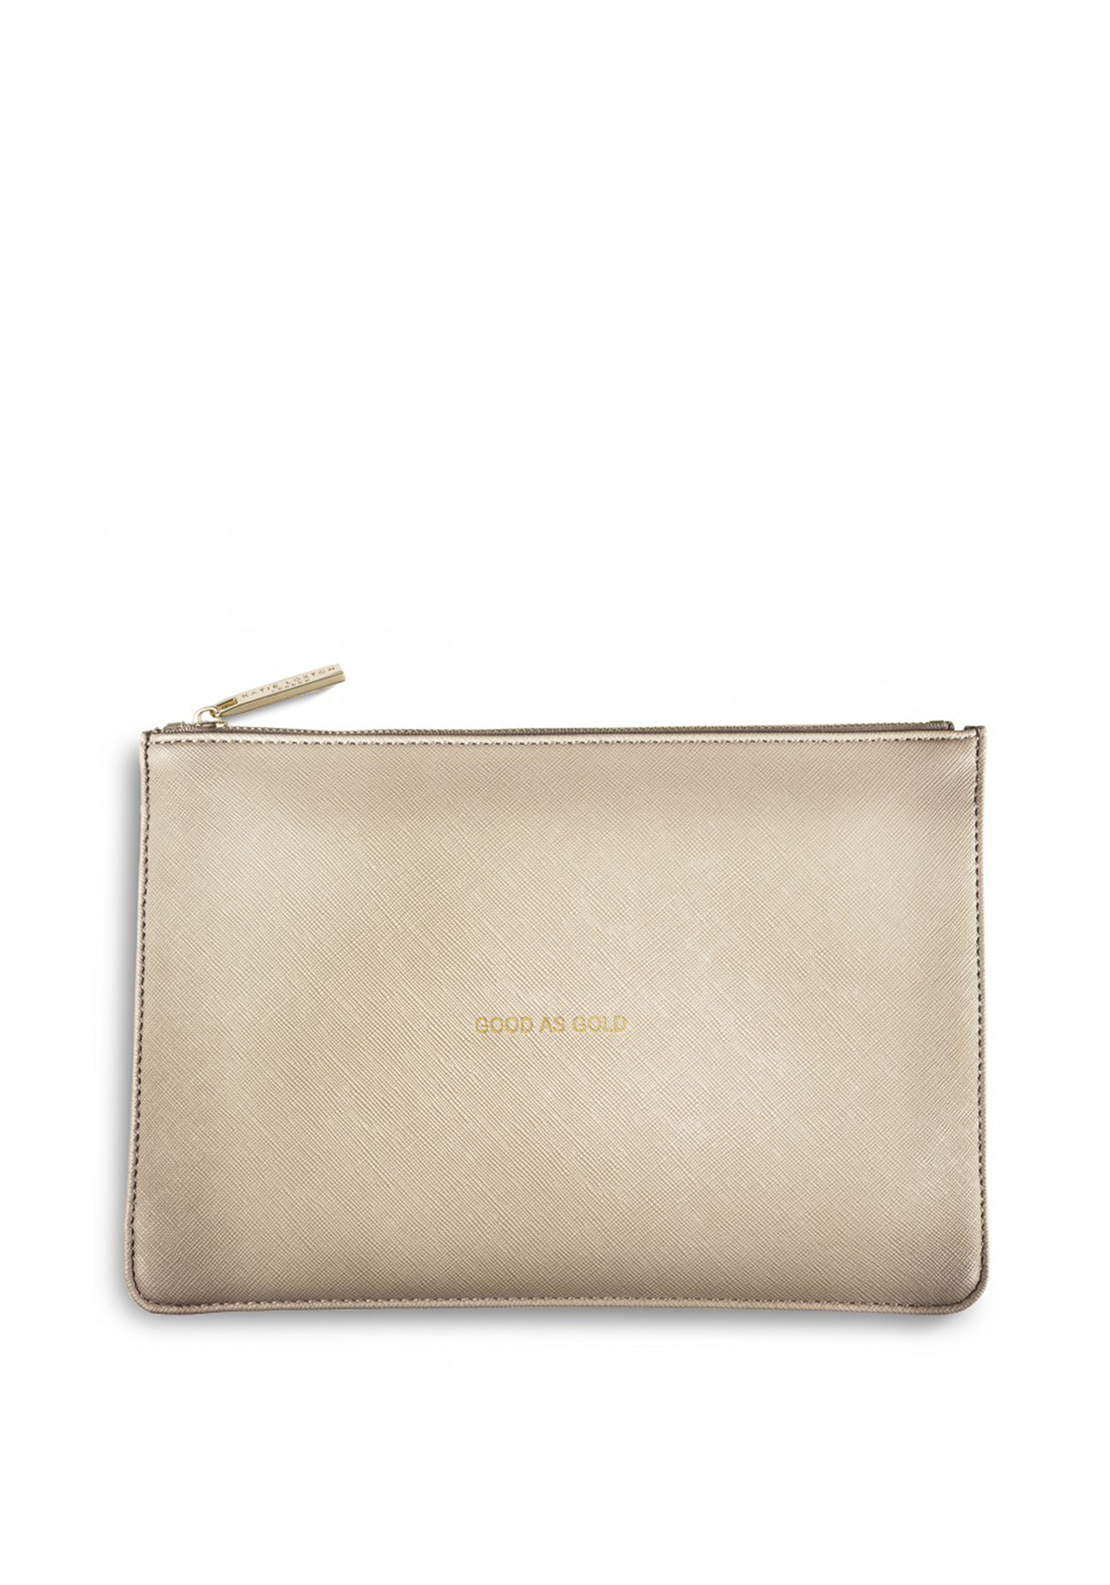 Katie Loxton Good As Gold Pouch Bag, Gold